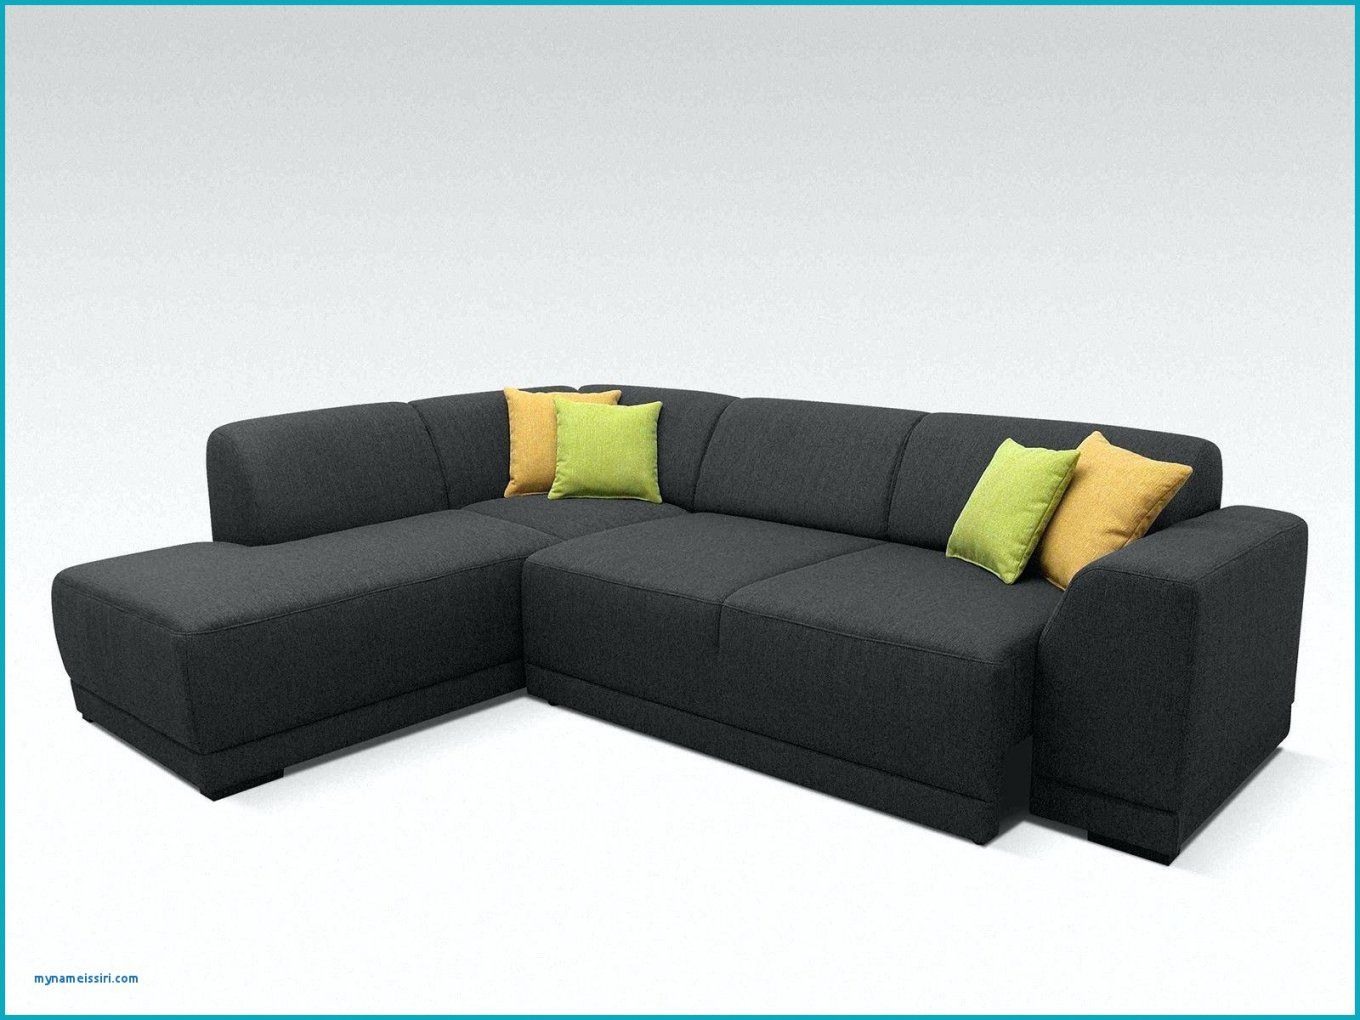 Hussen Ecksofa Ottomane Links Cool Excellent Good Situmore Ecksofa von Hussen Ecksofa Ottomane Links Photo